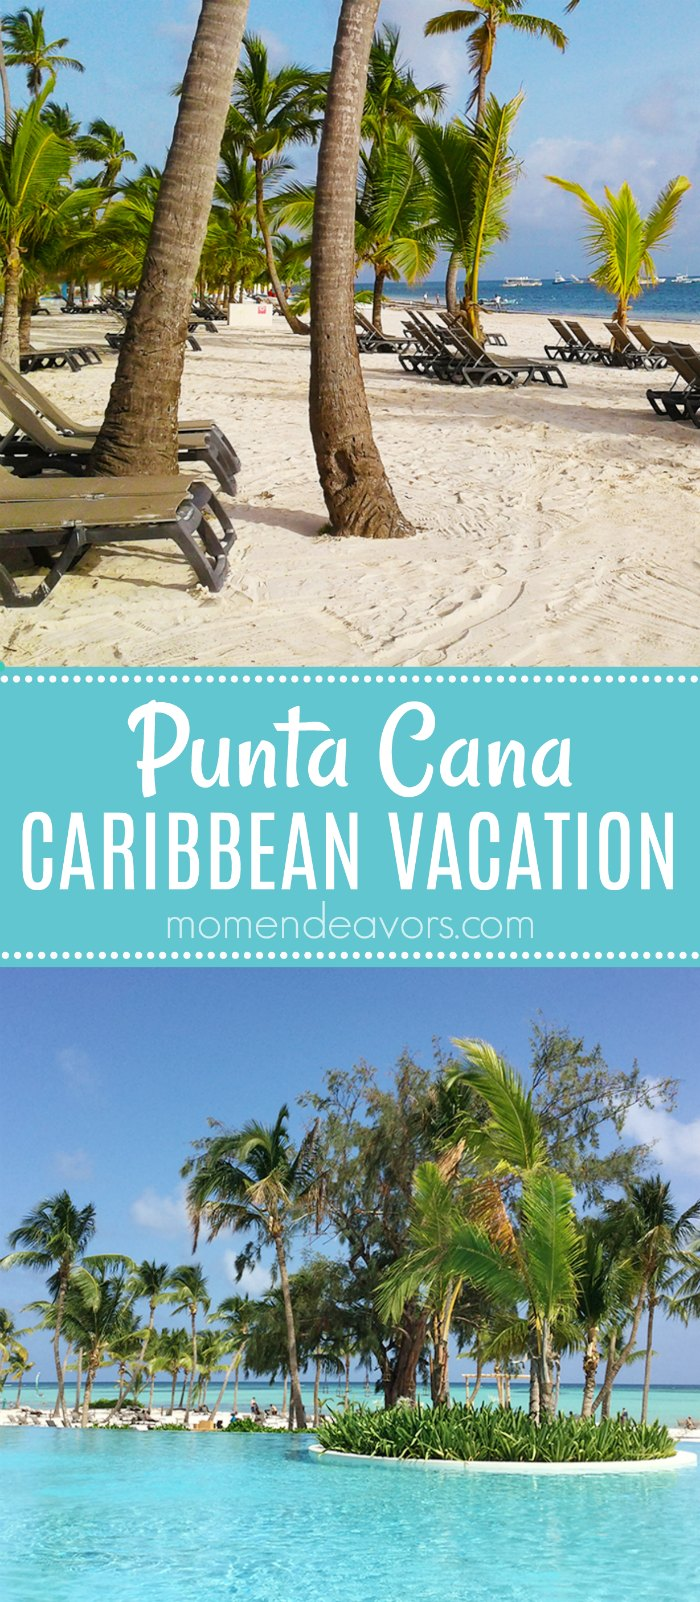 Punta Cana Caribbean Vacation